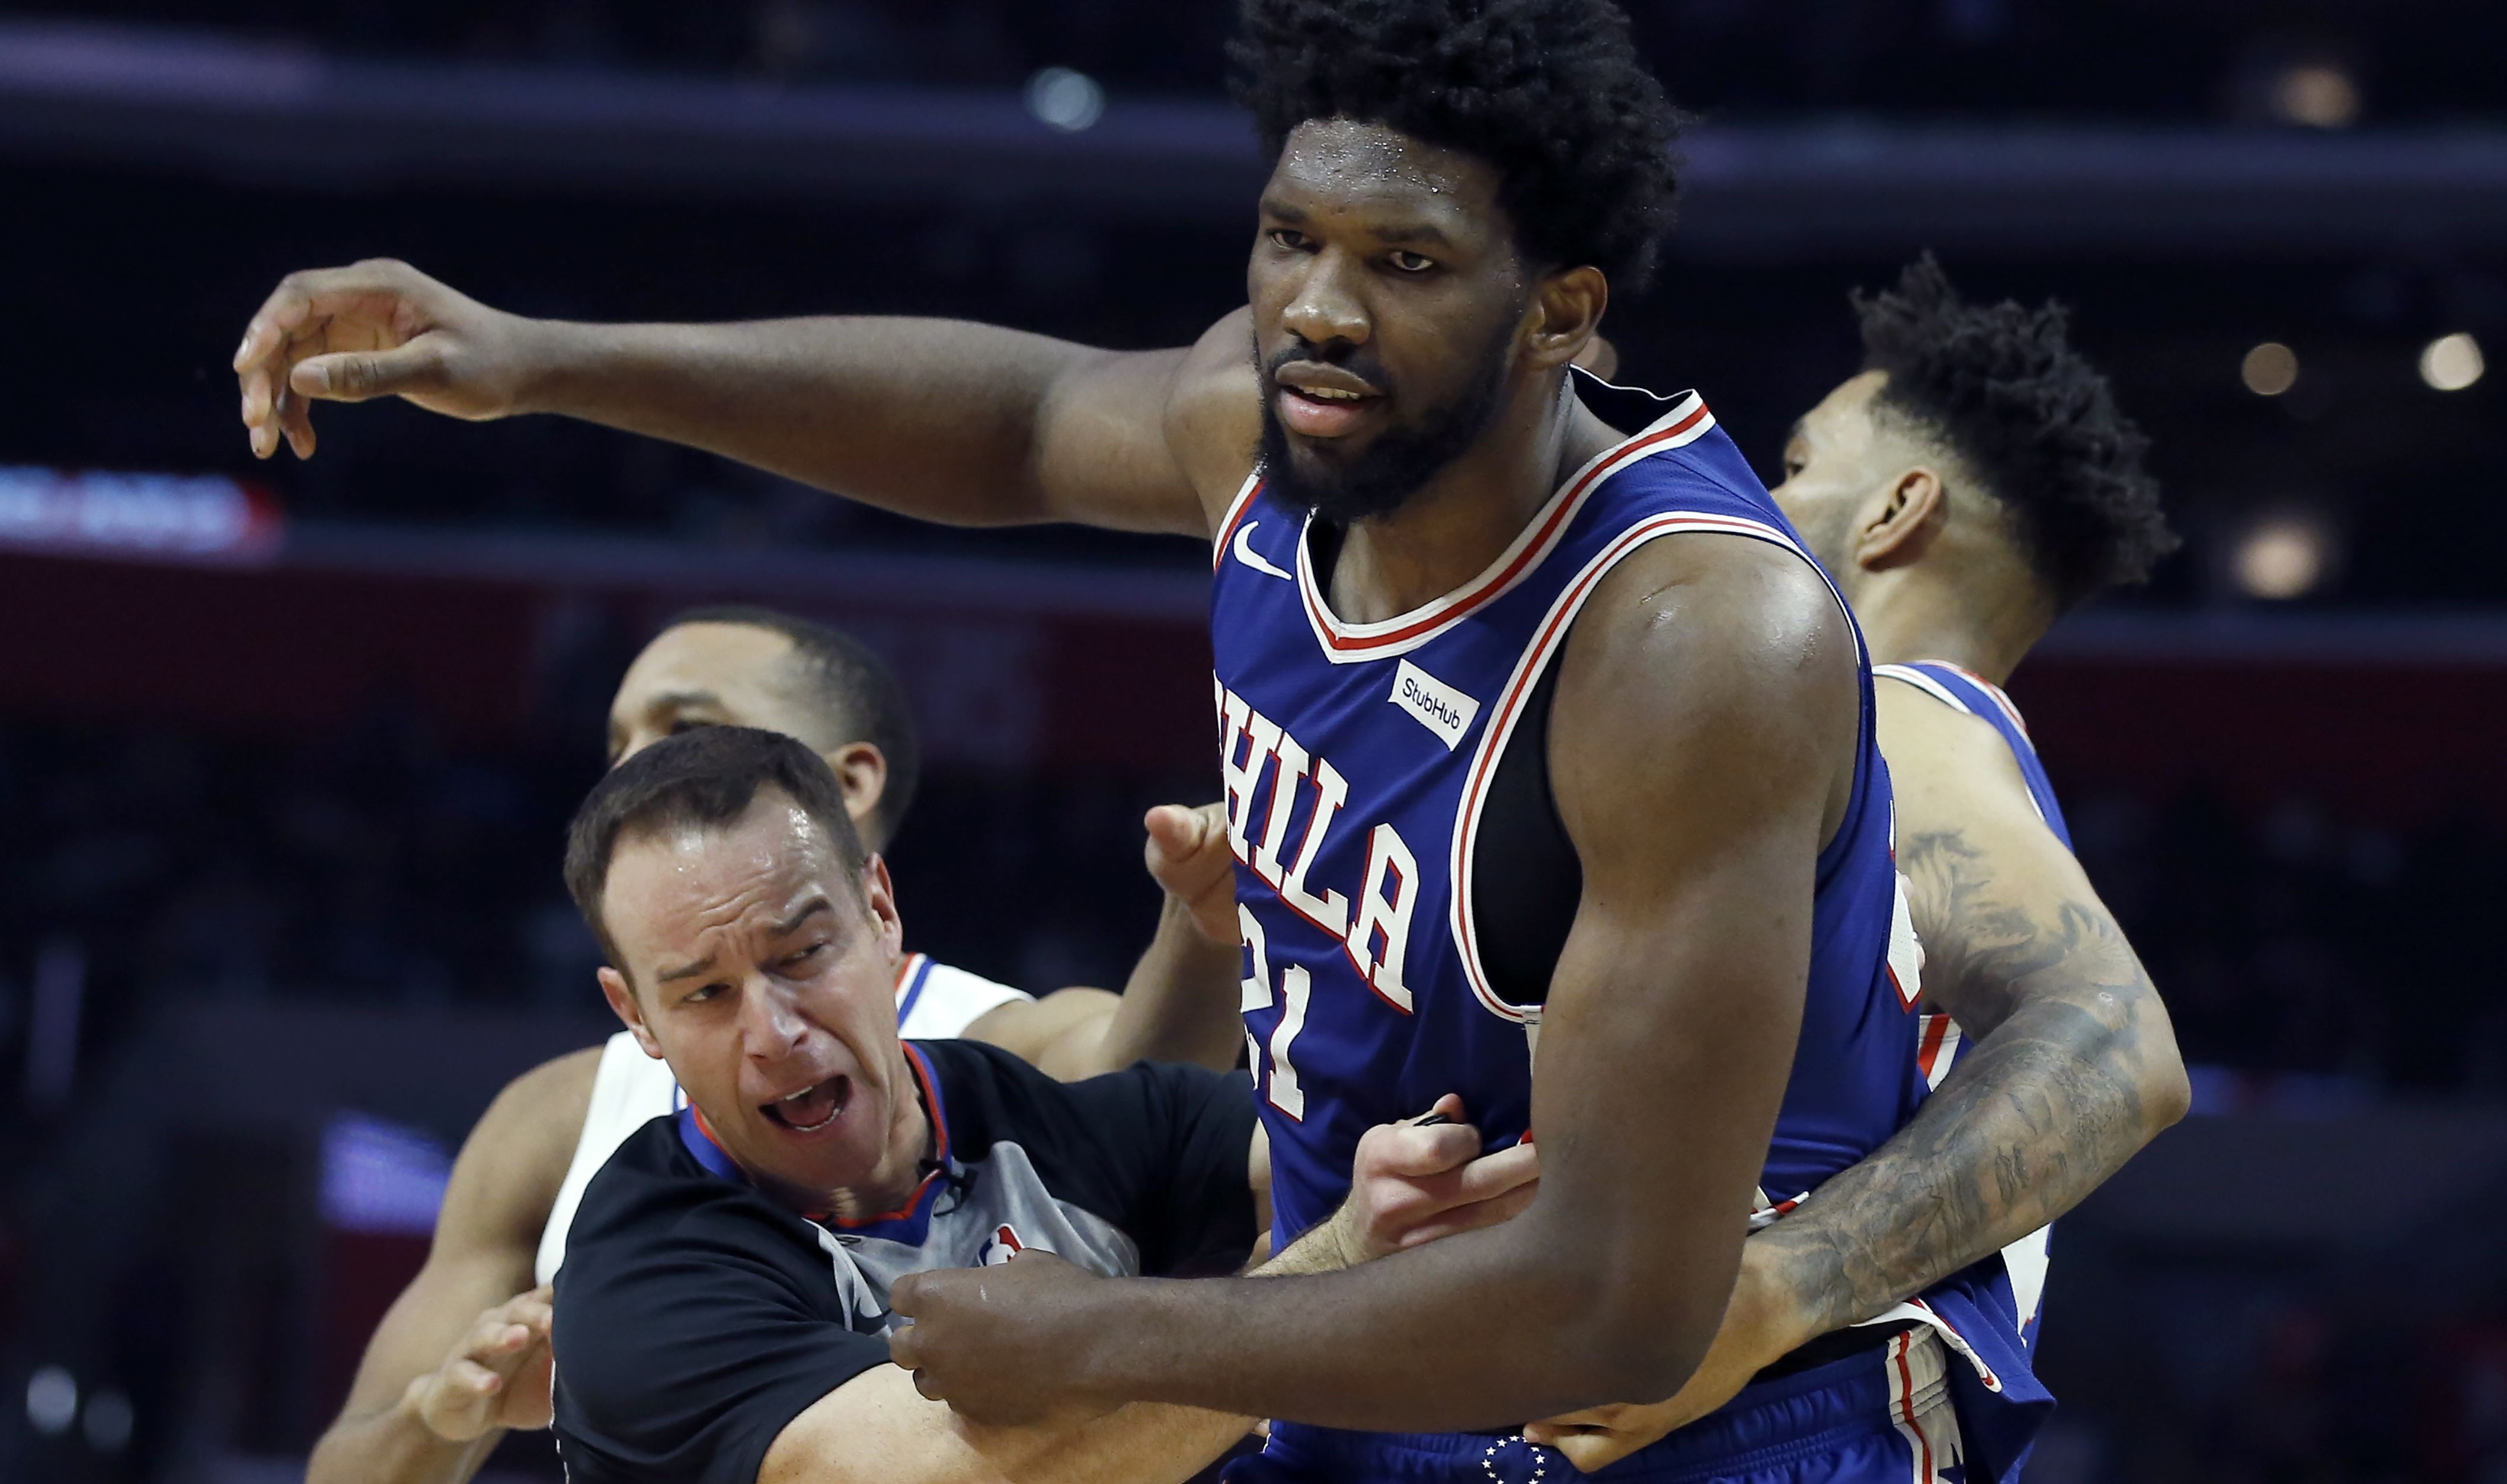 Chippy 76ers Clippers Game Results In Ejections Sports News 76ers Basketball News Sign Company